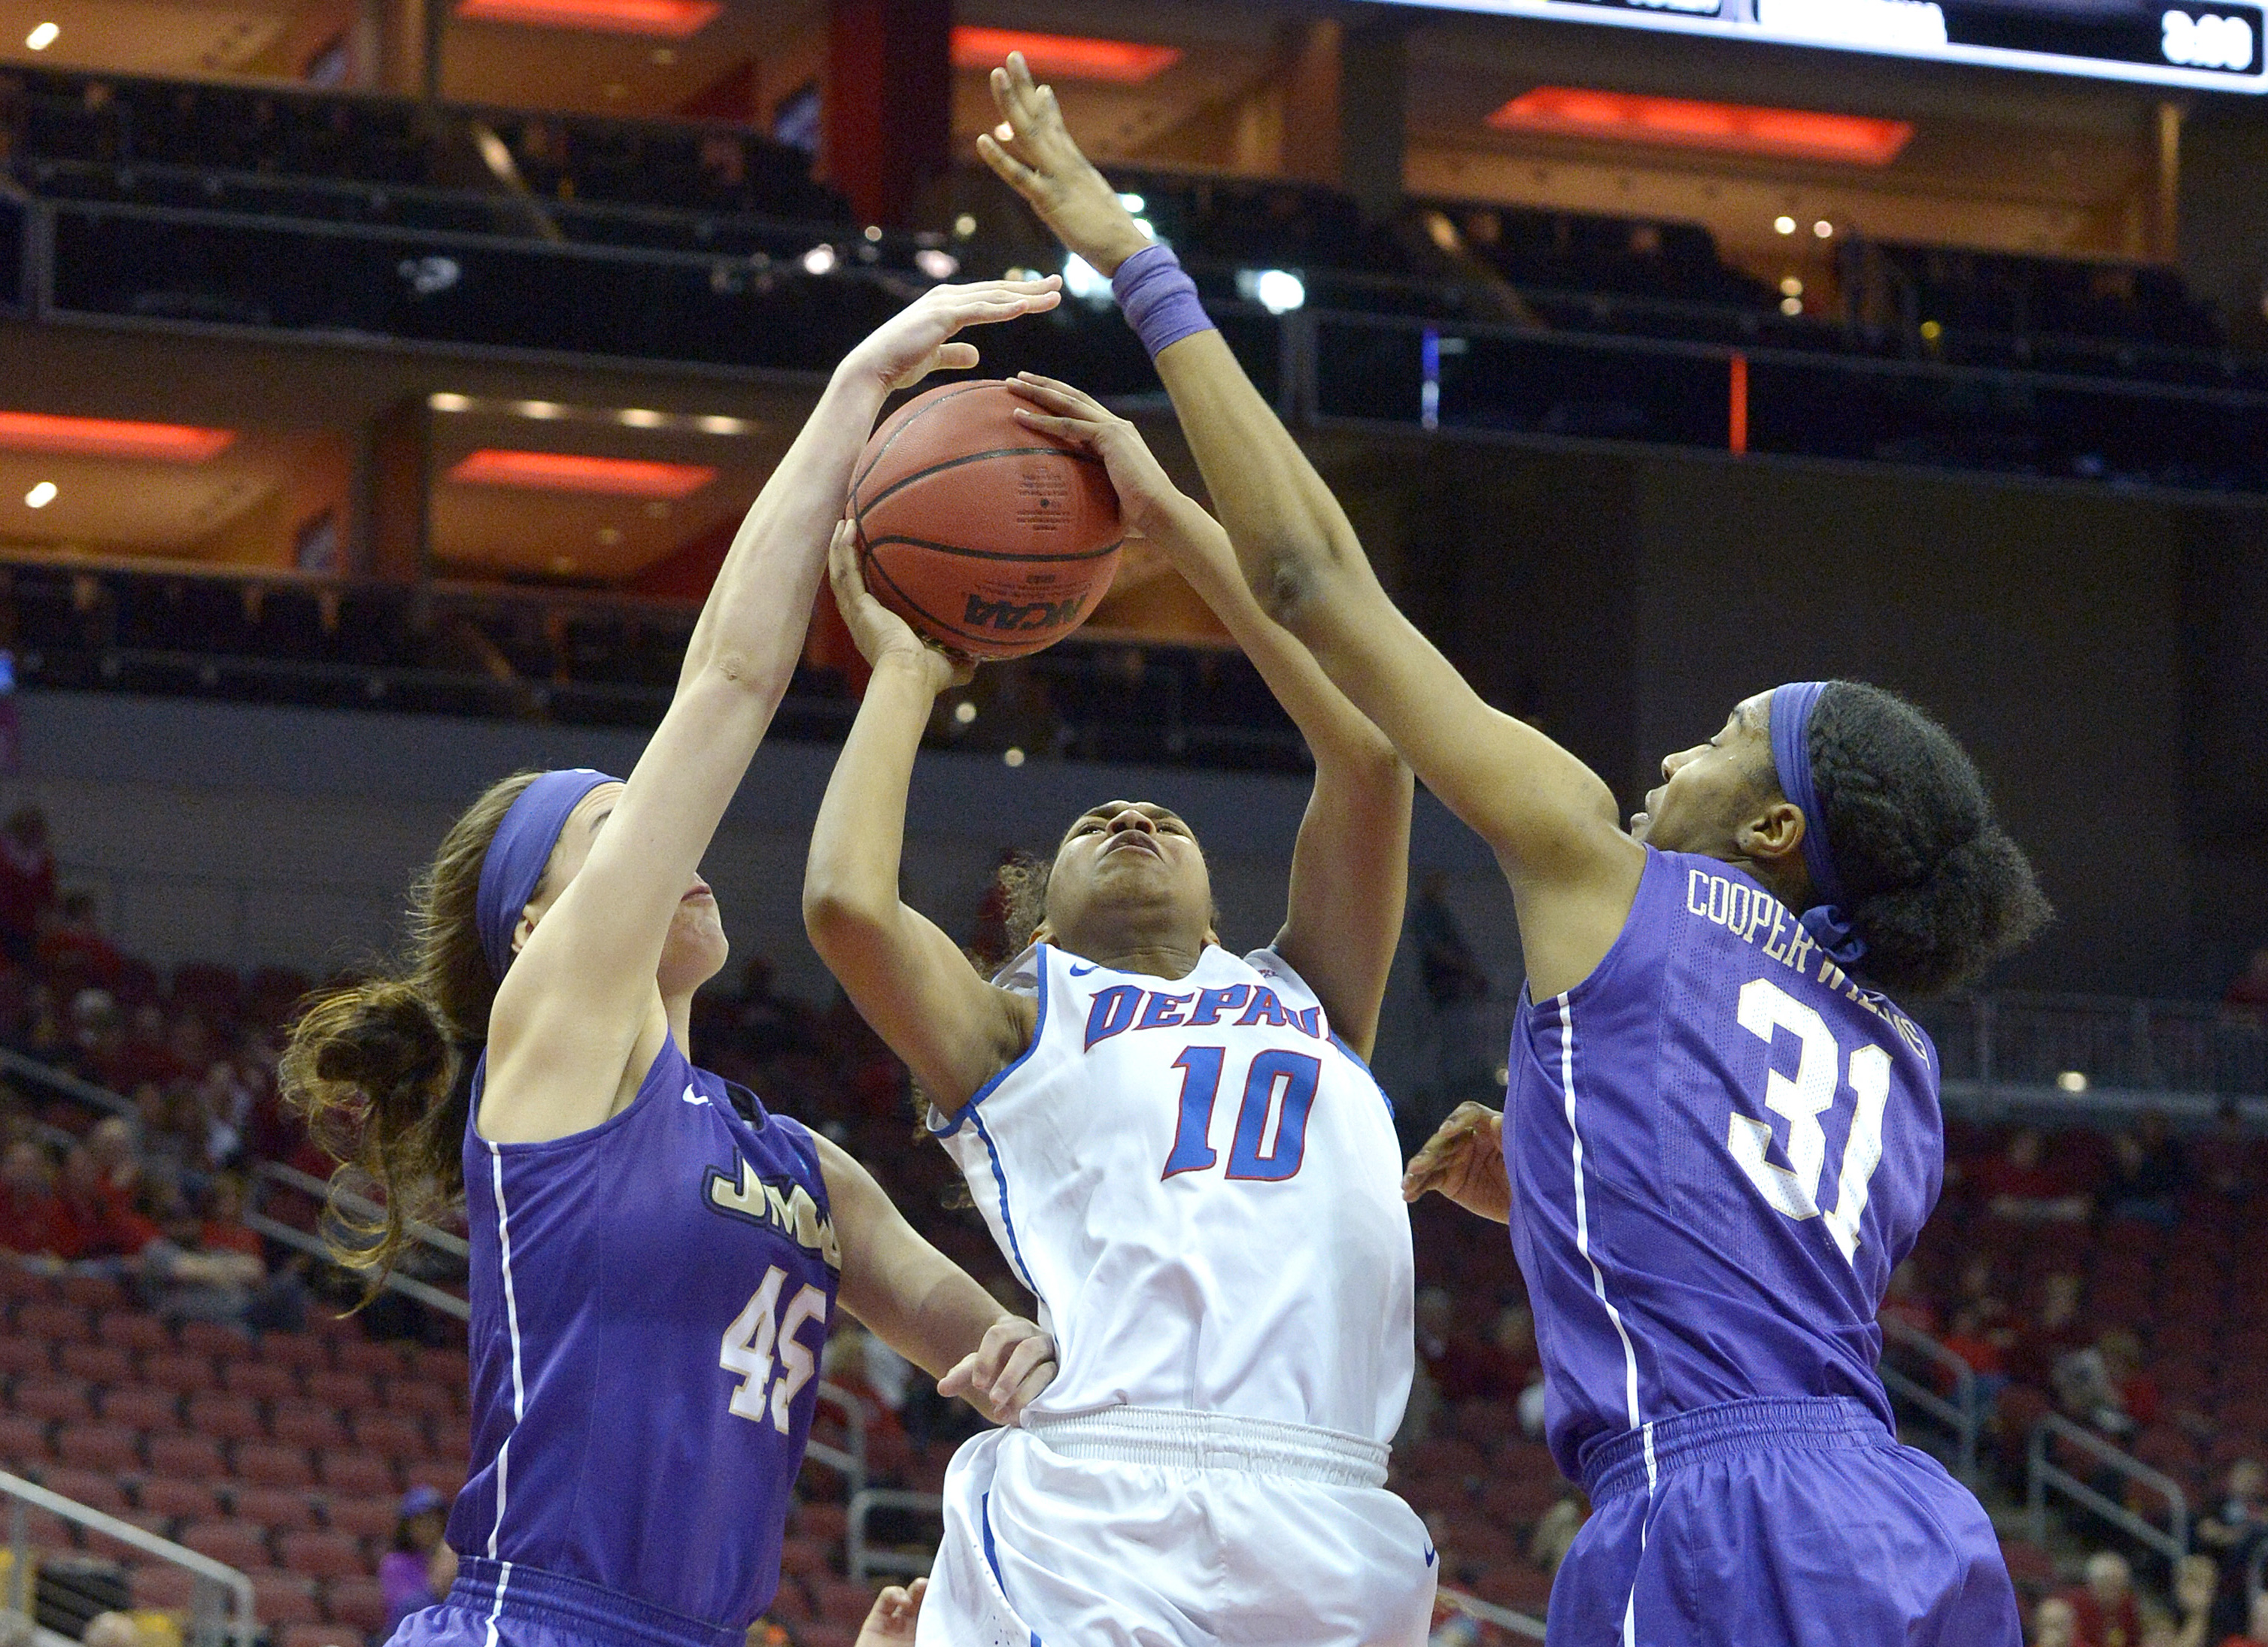 DePaul's Amarah Coleman (10) attempts a shot through the defense of James Madison's Kayla Cooper-Williams (31) and Savannah Felgemacher (45) during the second half of a first-round women's college basketball game in the NCAA Tournament in Louisville, Ky.,